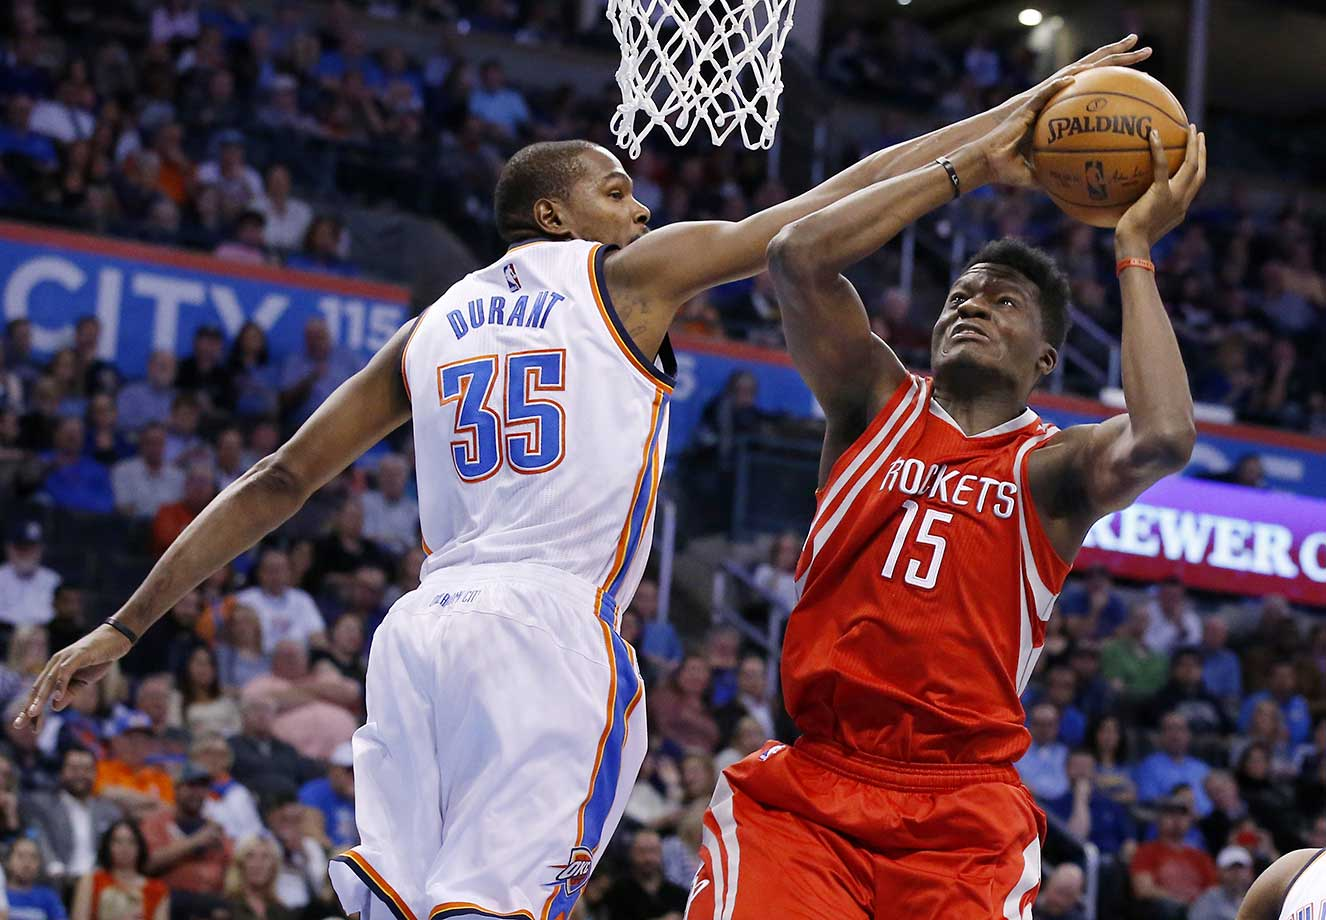 Oklahoma City Thunder forward Kevin Durant defends Houston Rockets forward Clint Capela in Oklahoma City. The Thunder won 116-108.